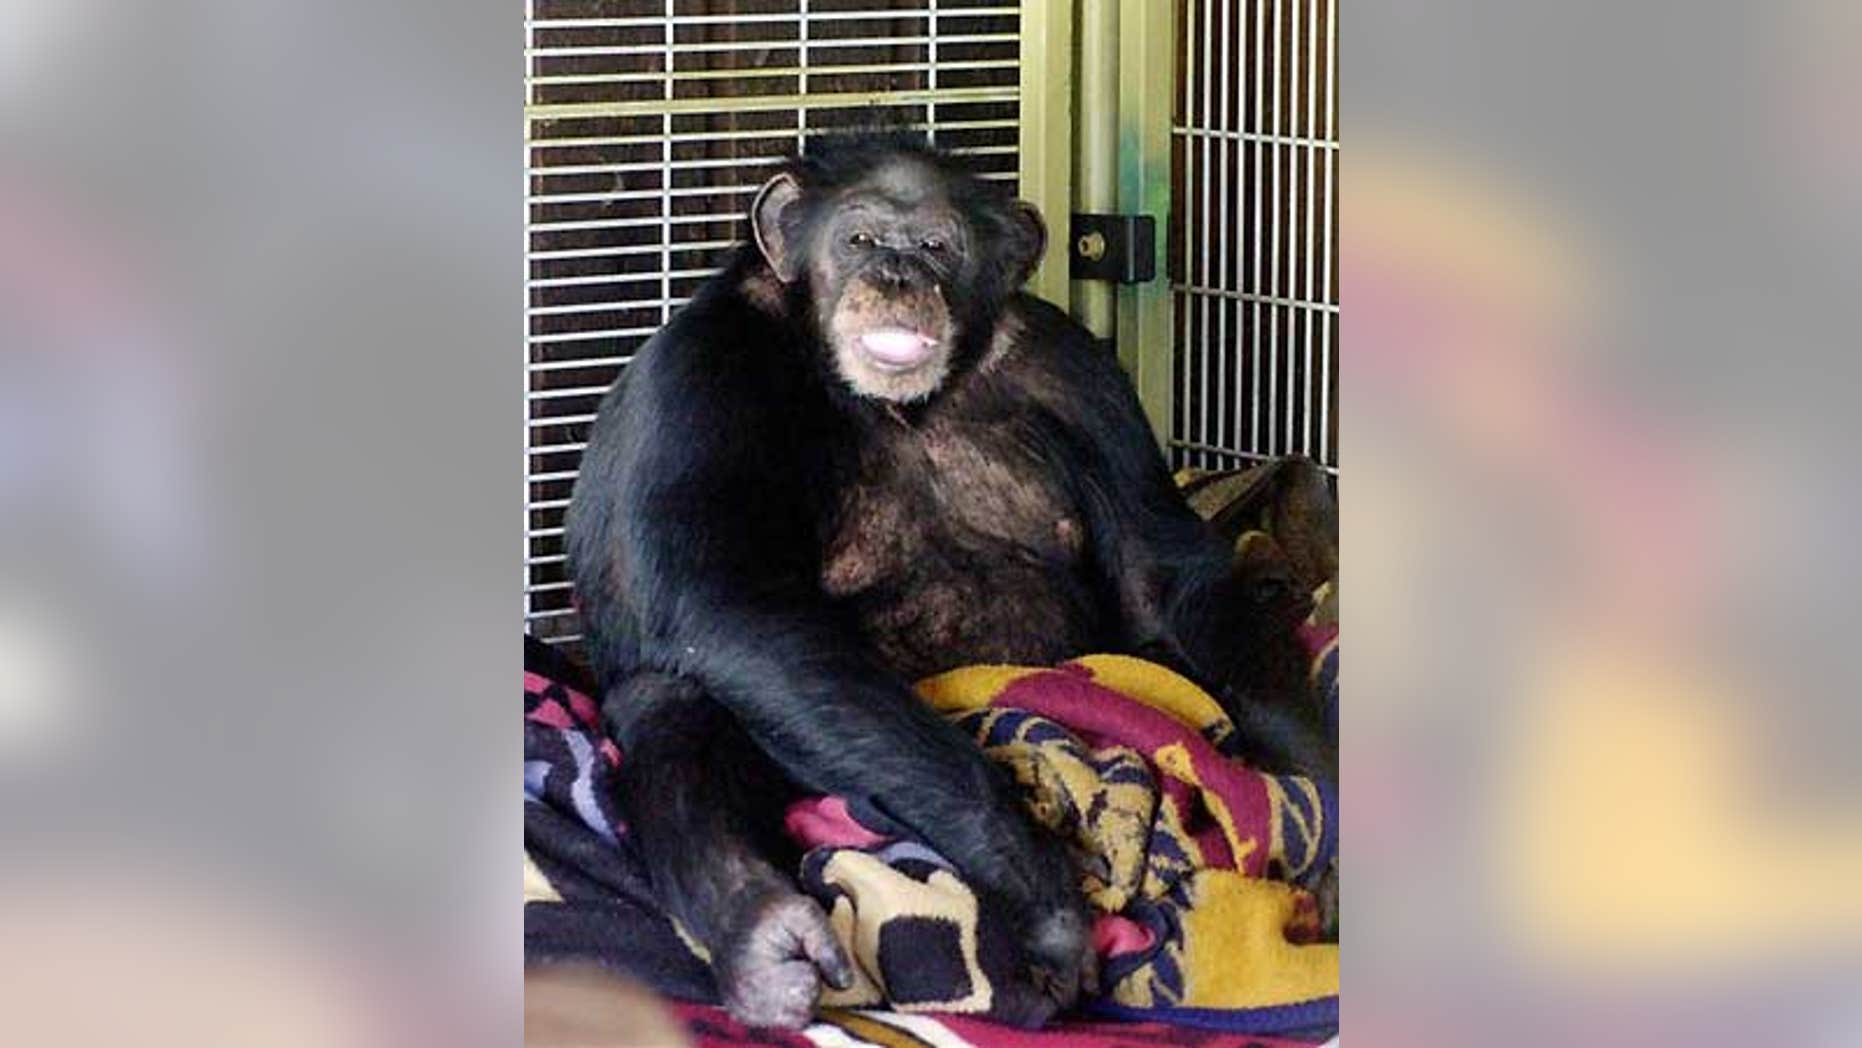 Travis the chimpanzee, pictured here in a 2003 file photo